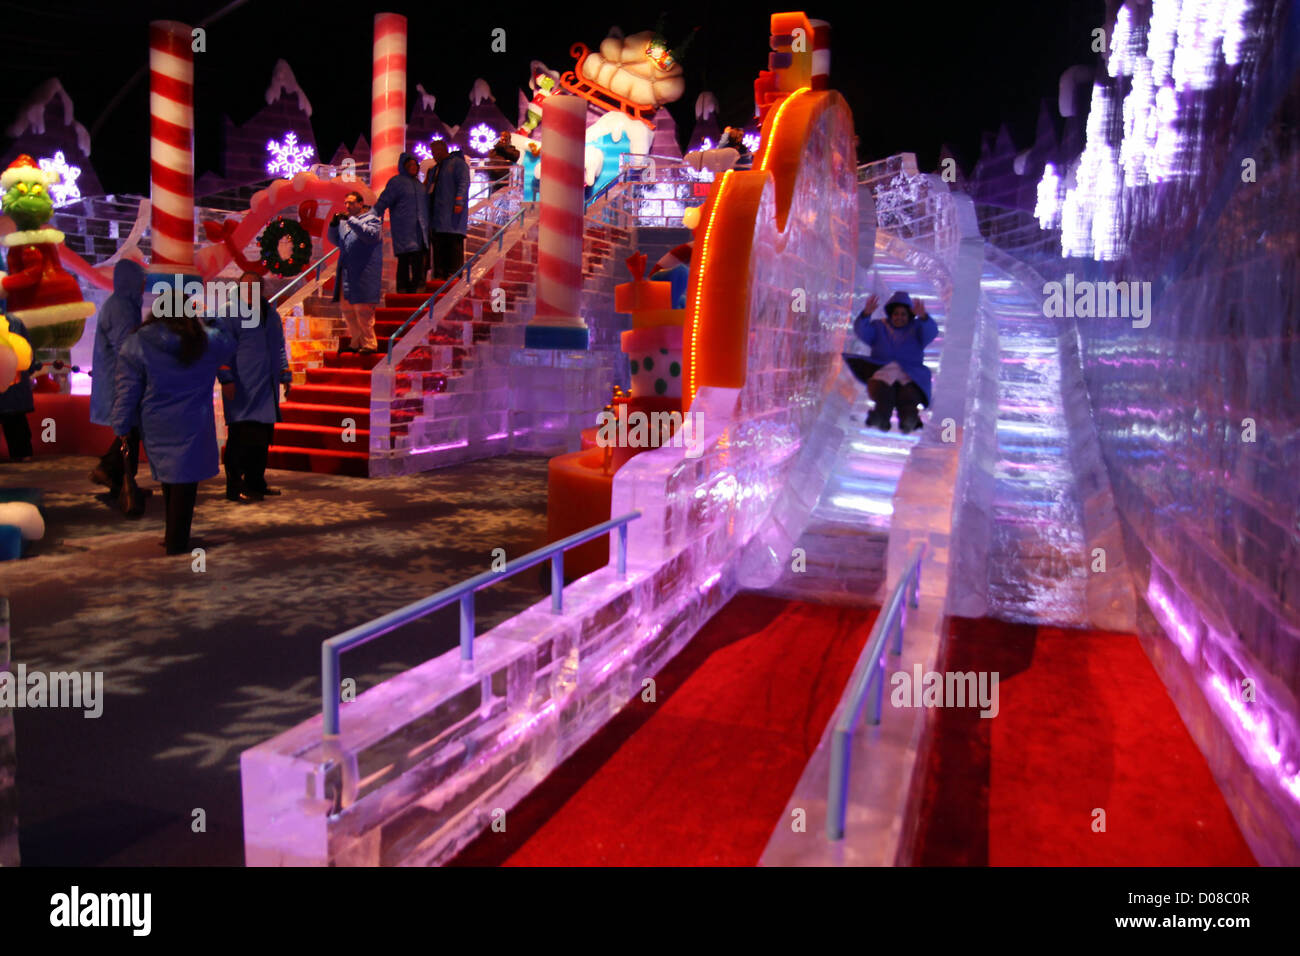 Christmas On The Potomac.Christmas On The Potomac Ice Is An Amazing Sculpted Ice